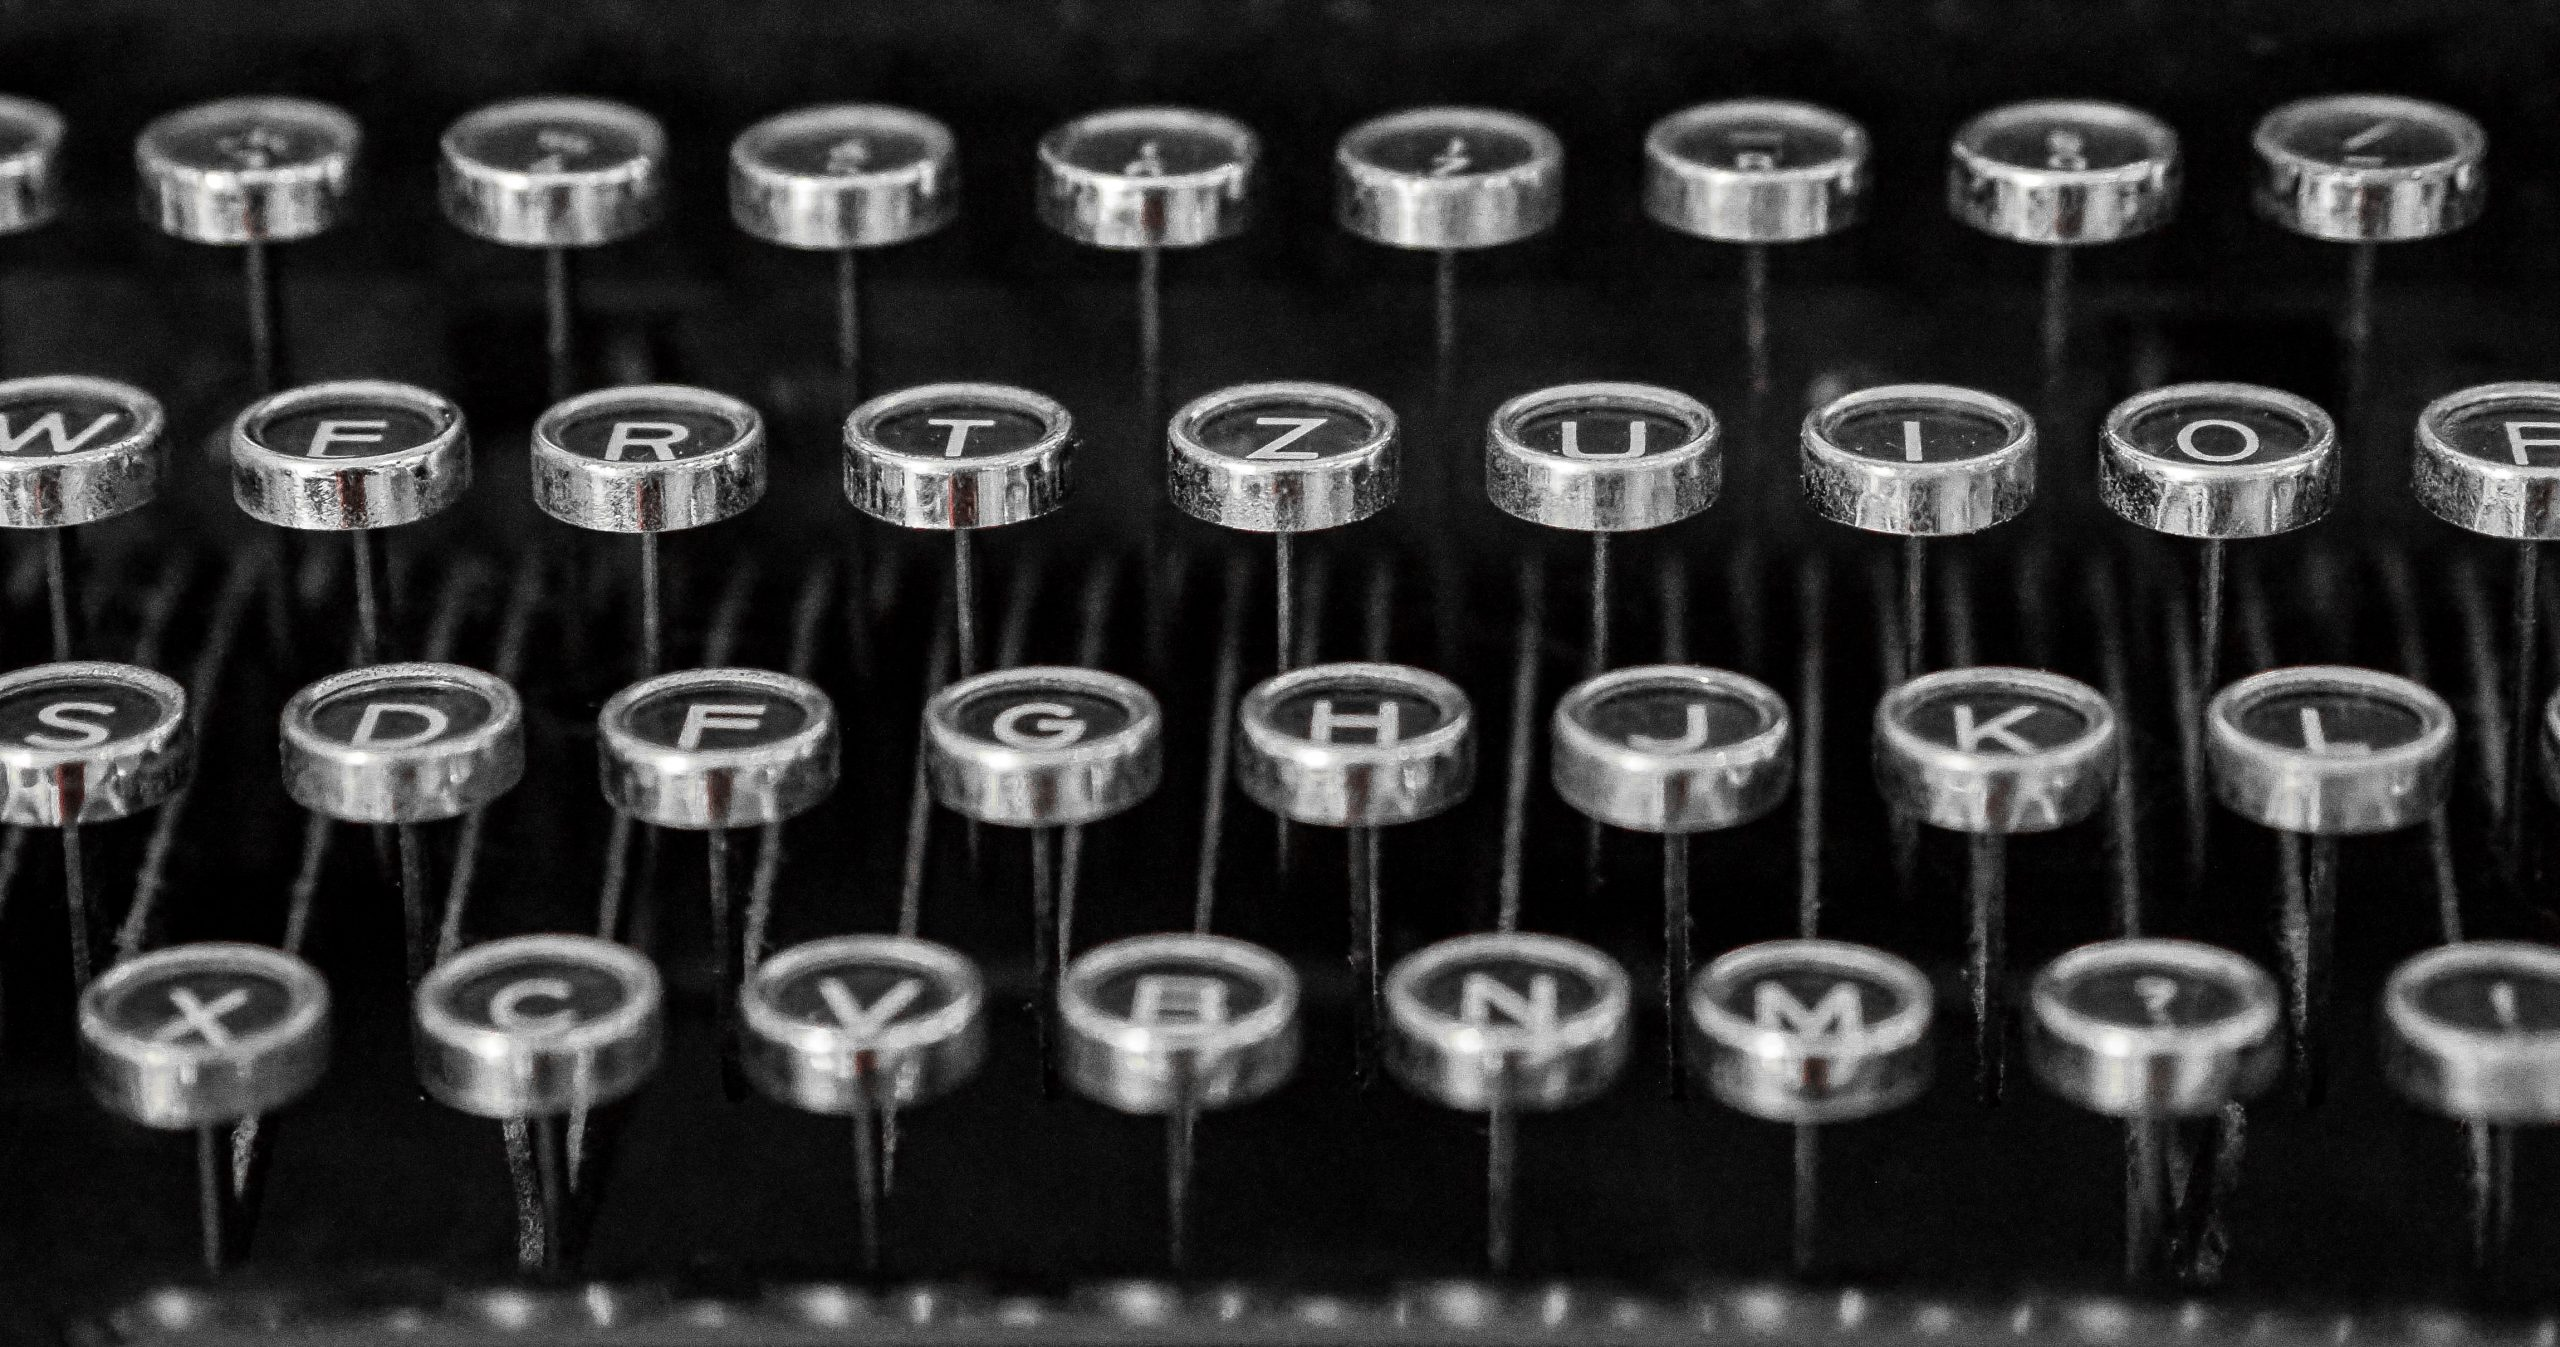 image of a typewriter keyboard